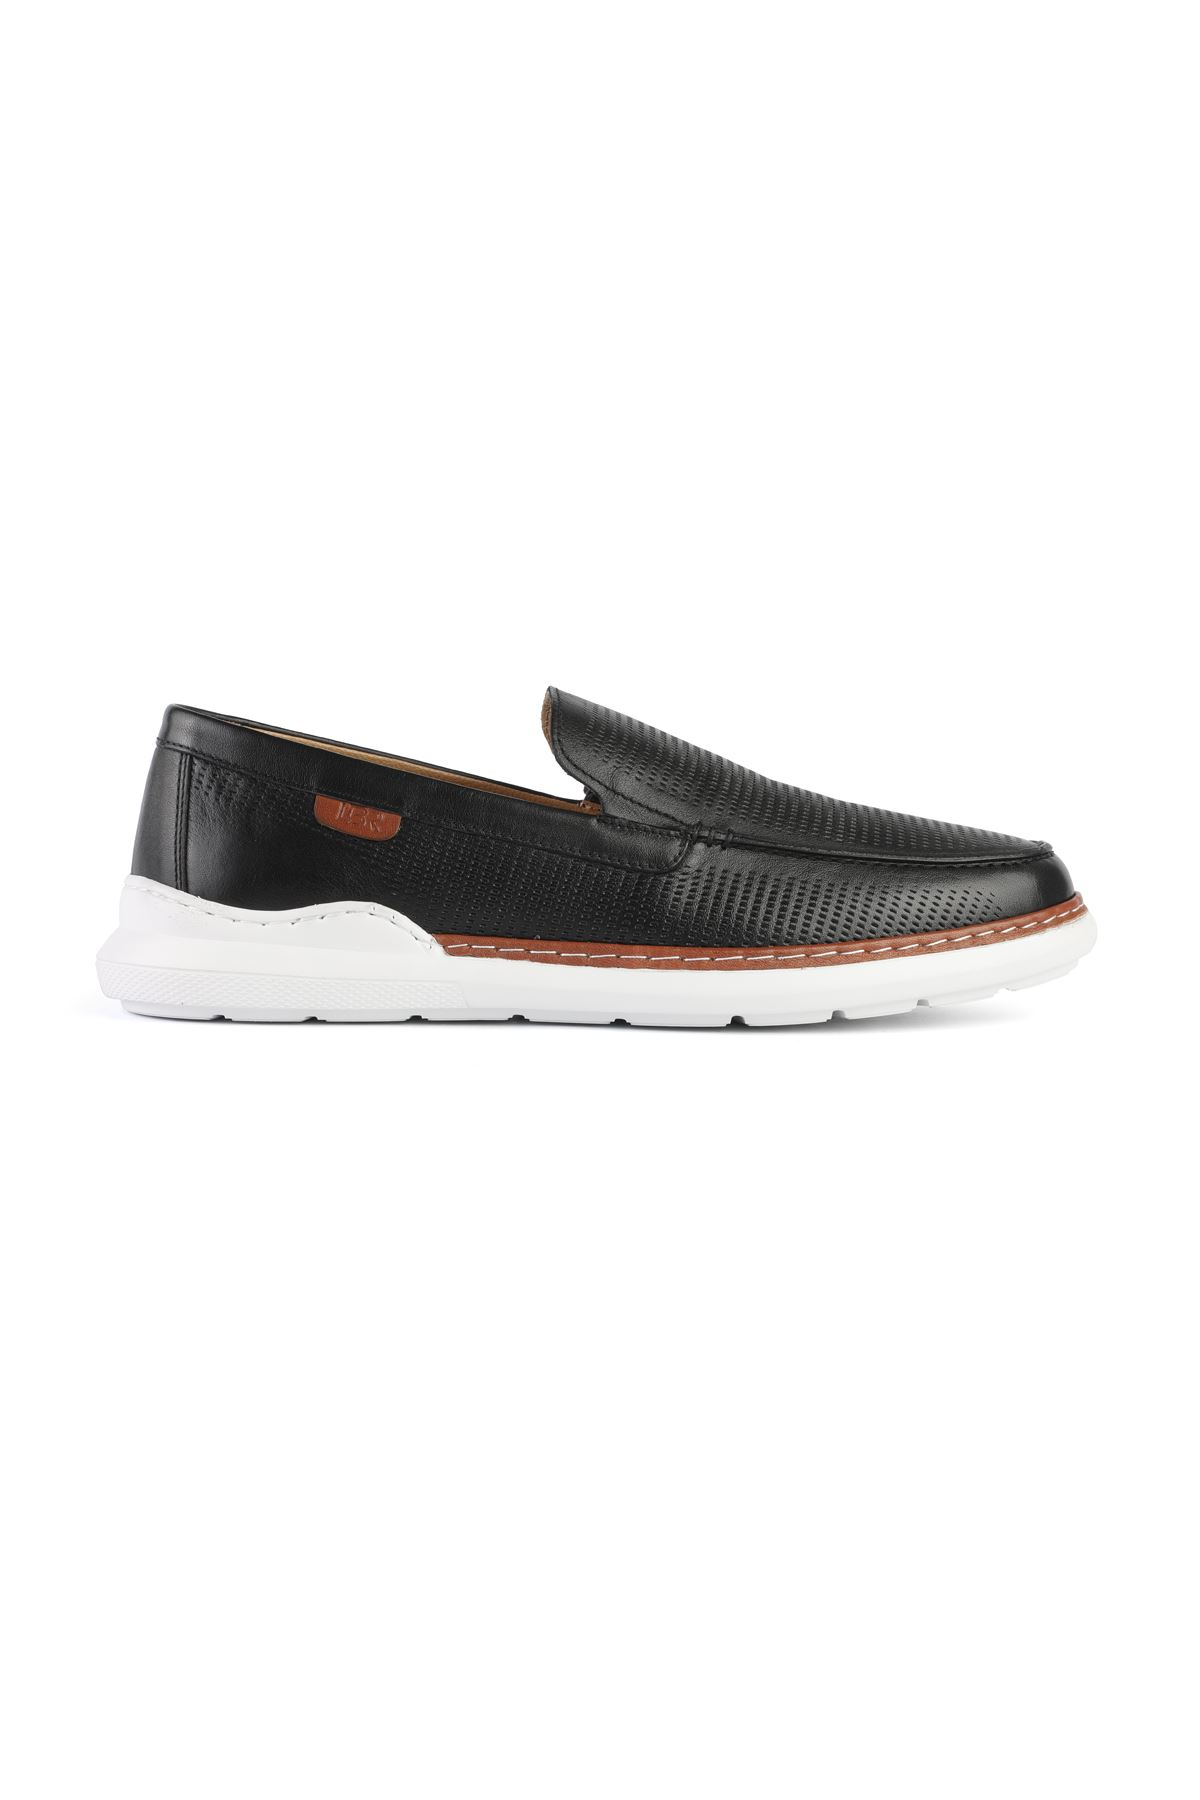 Libero 3332 Black Loafer Shoes